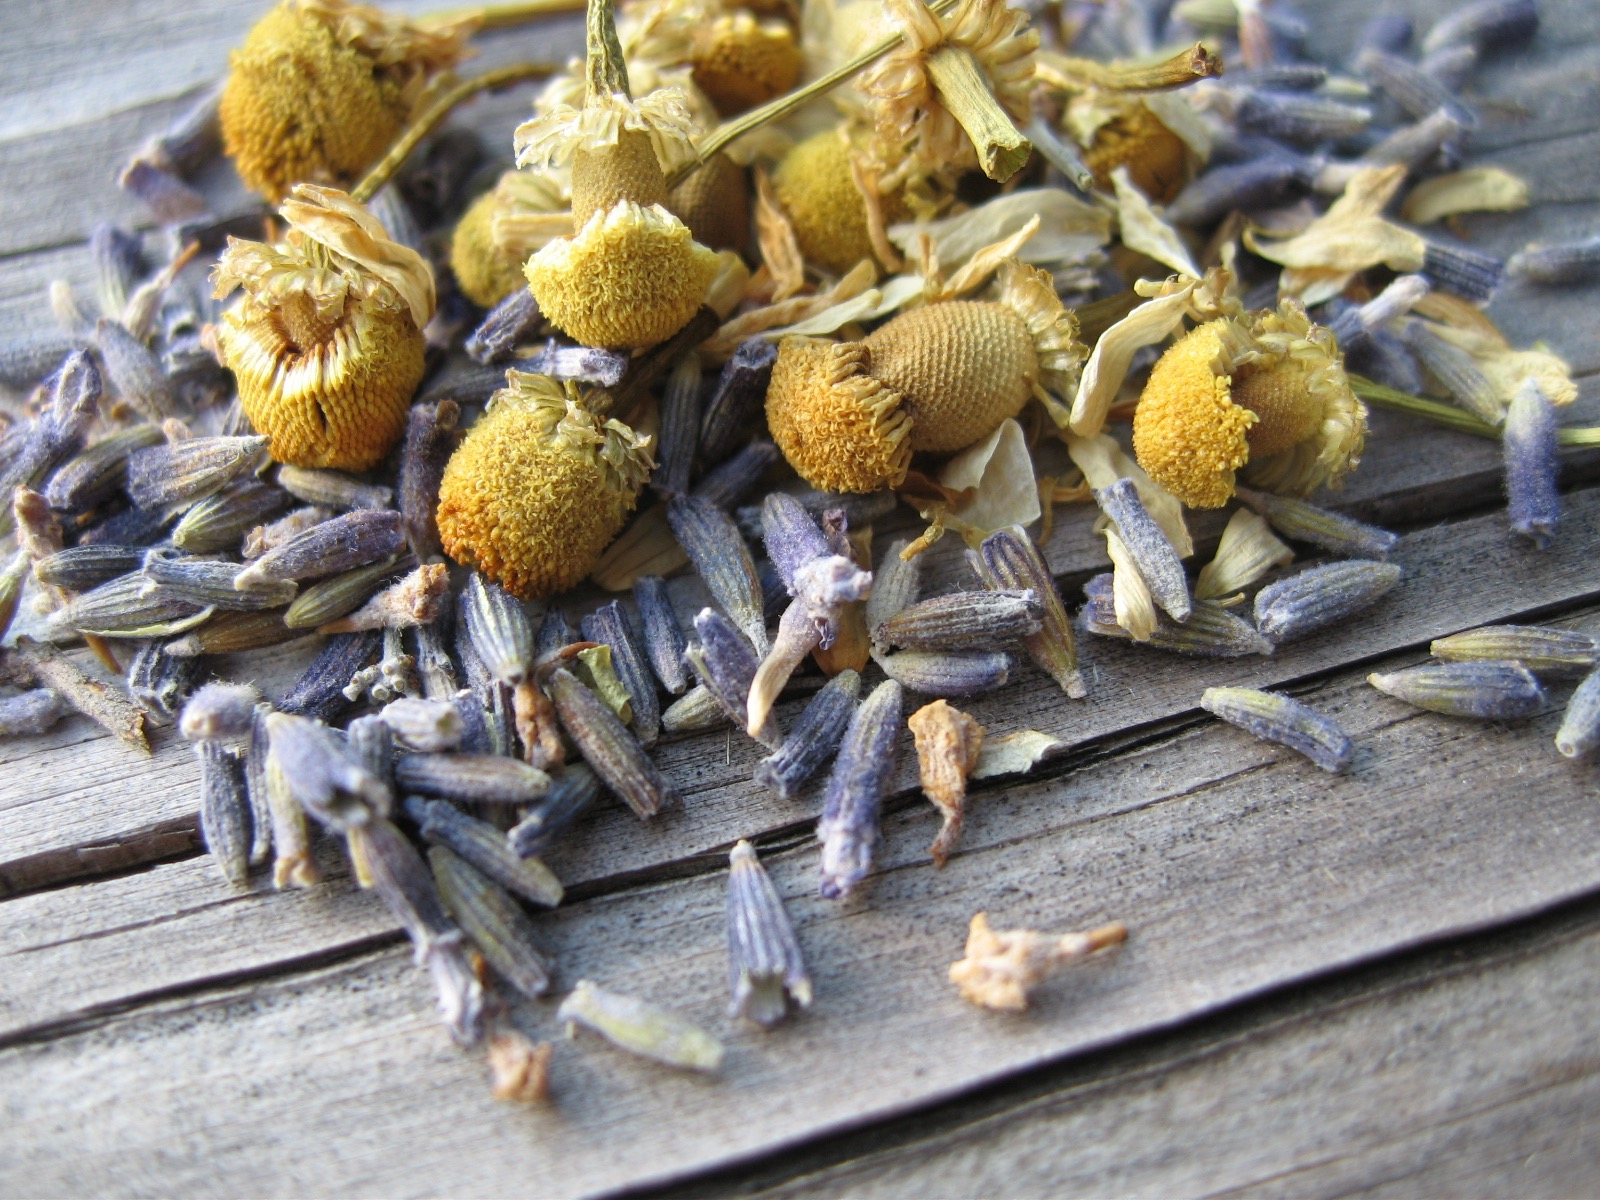 Closeup of lavender and chamomile buds on a rough wooden table.